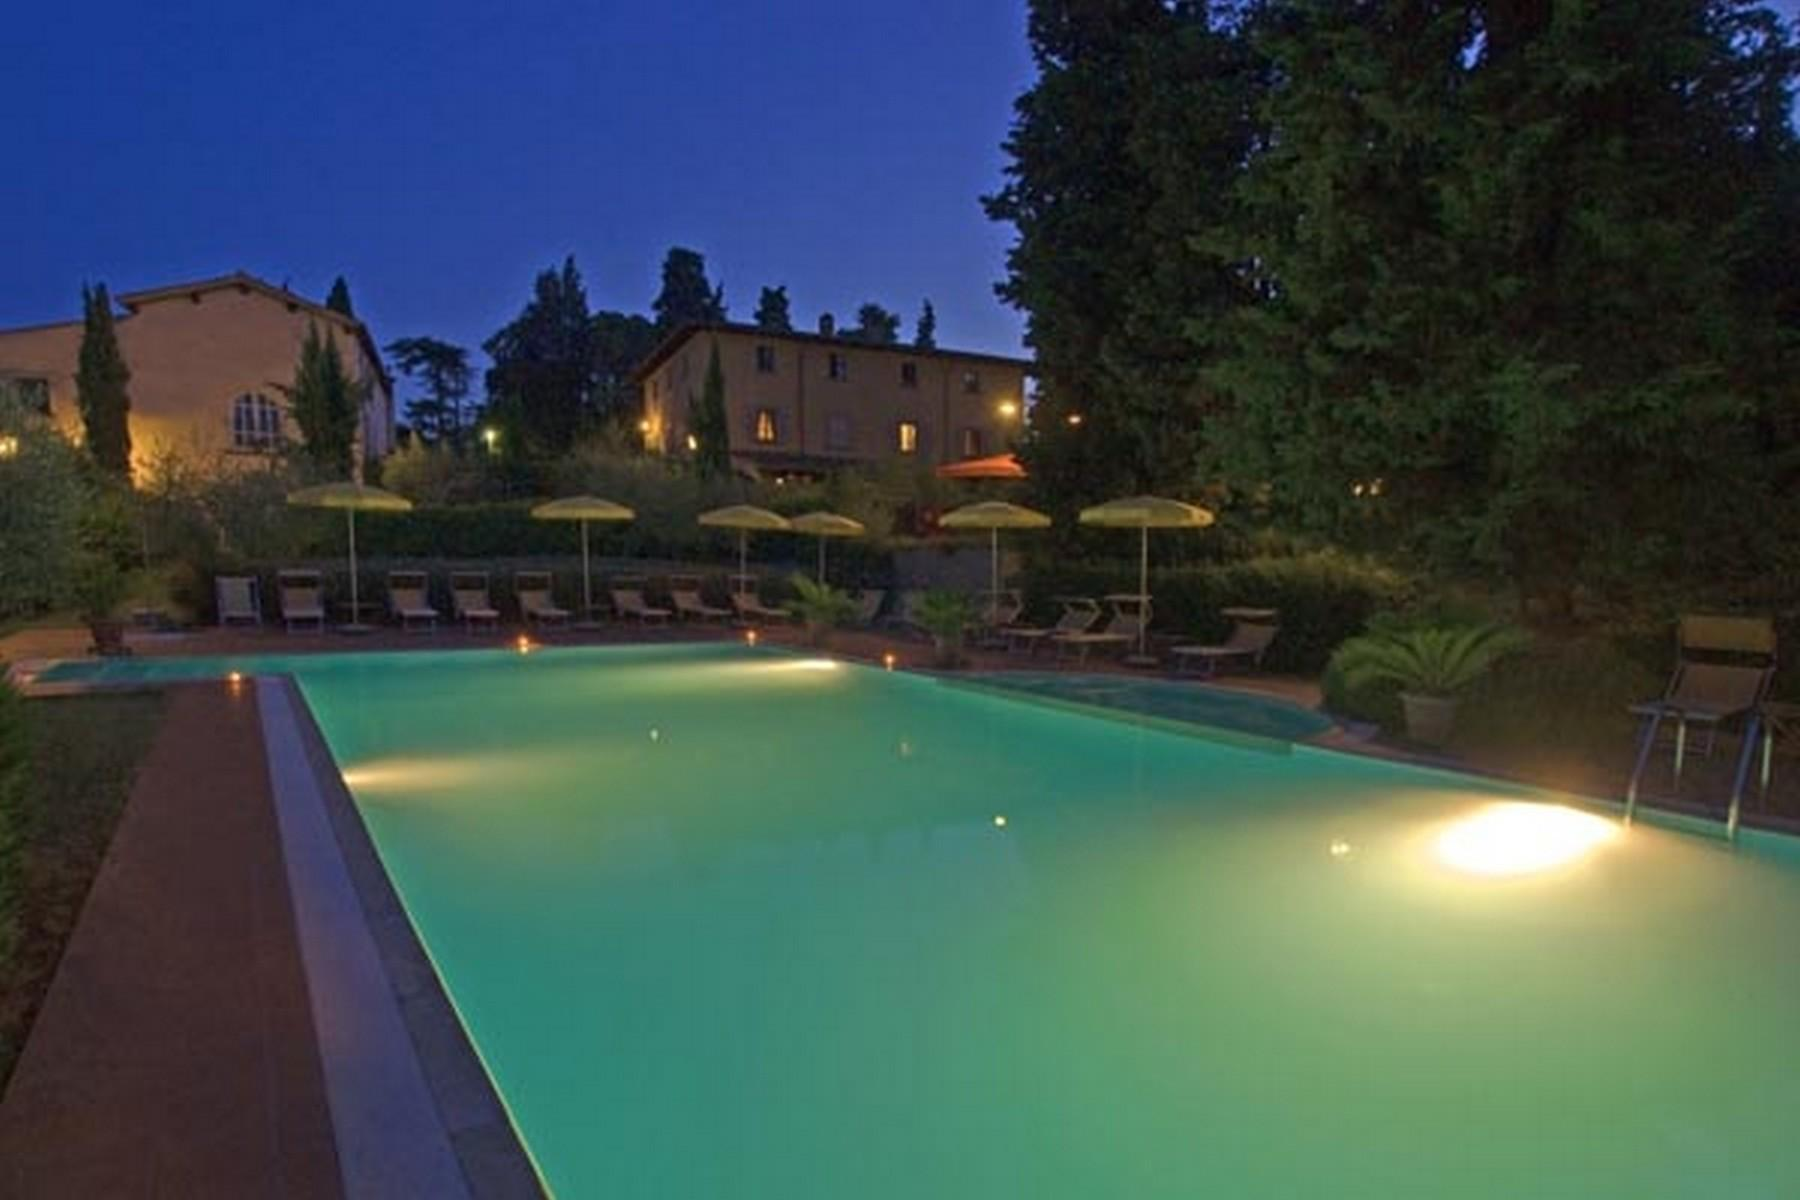 Charming holiday resort in the heart of Tuscany - 13